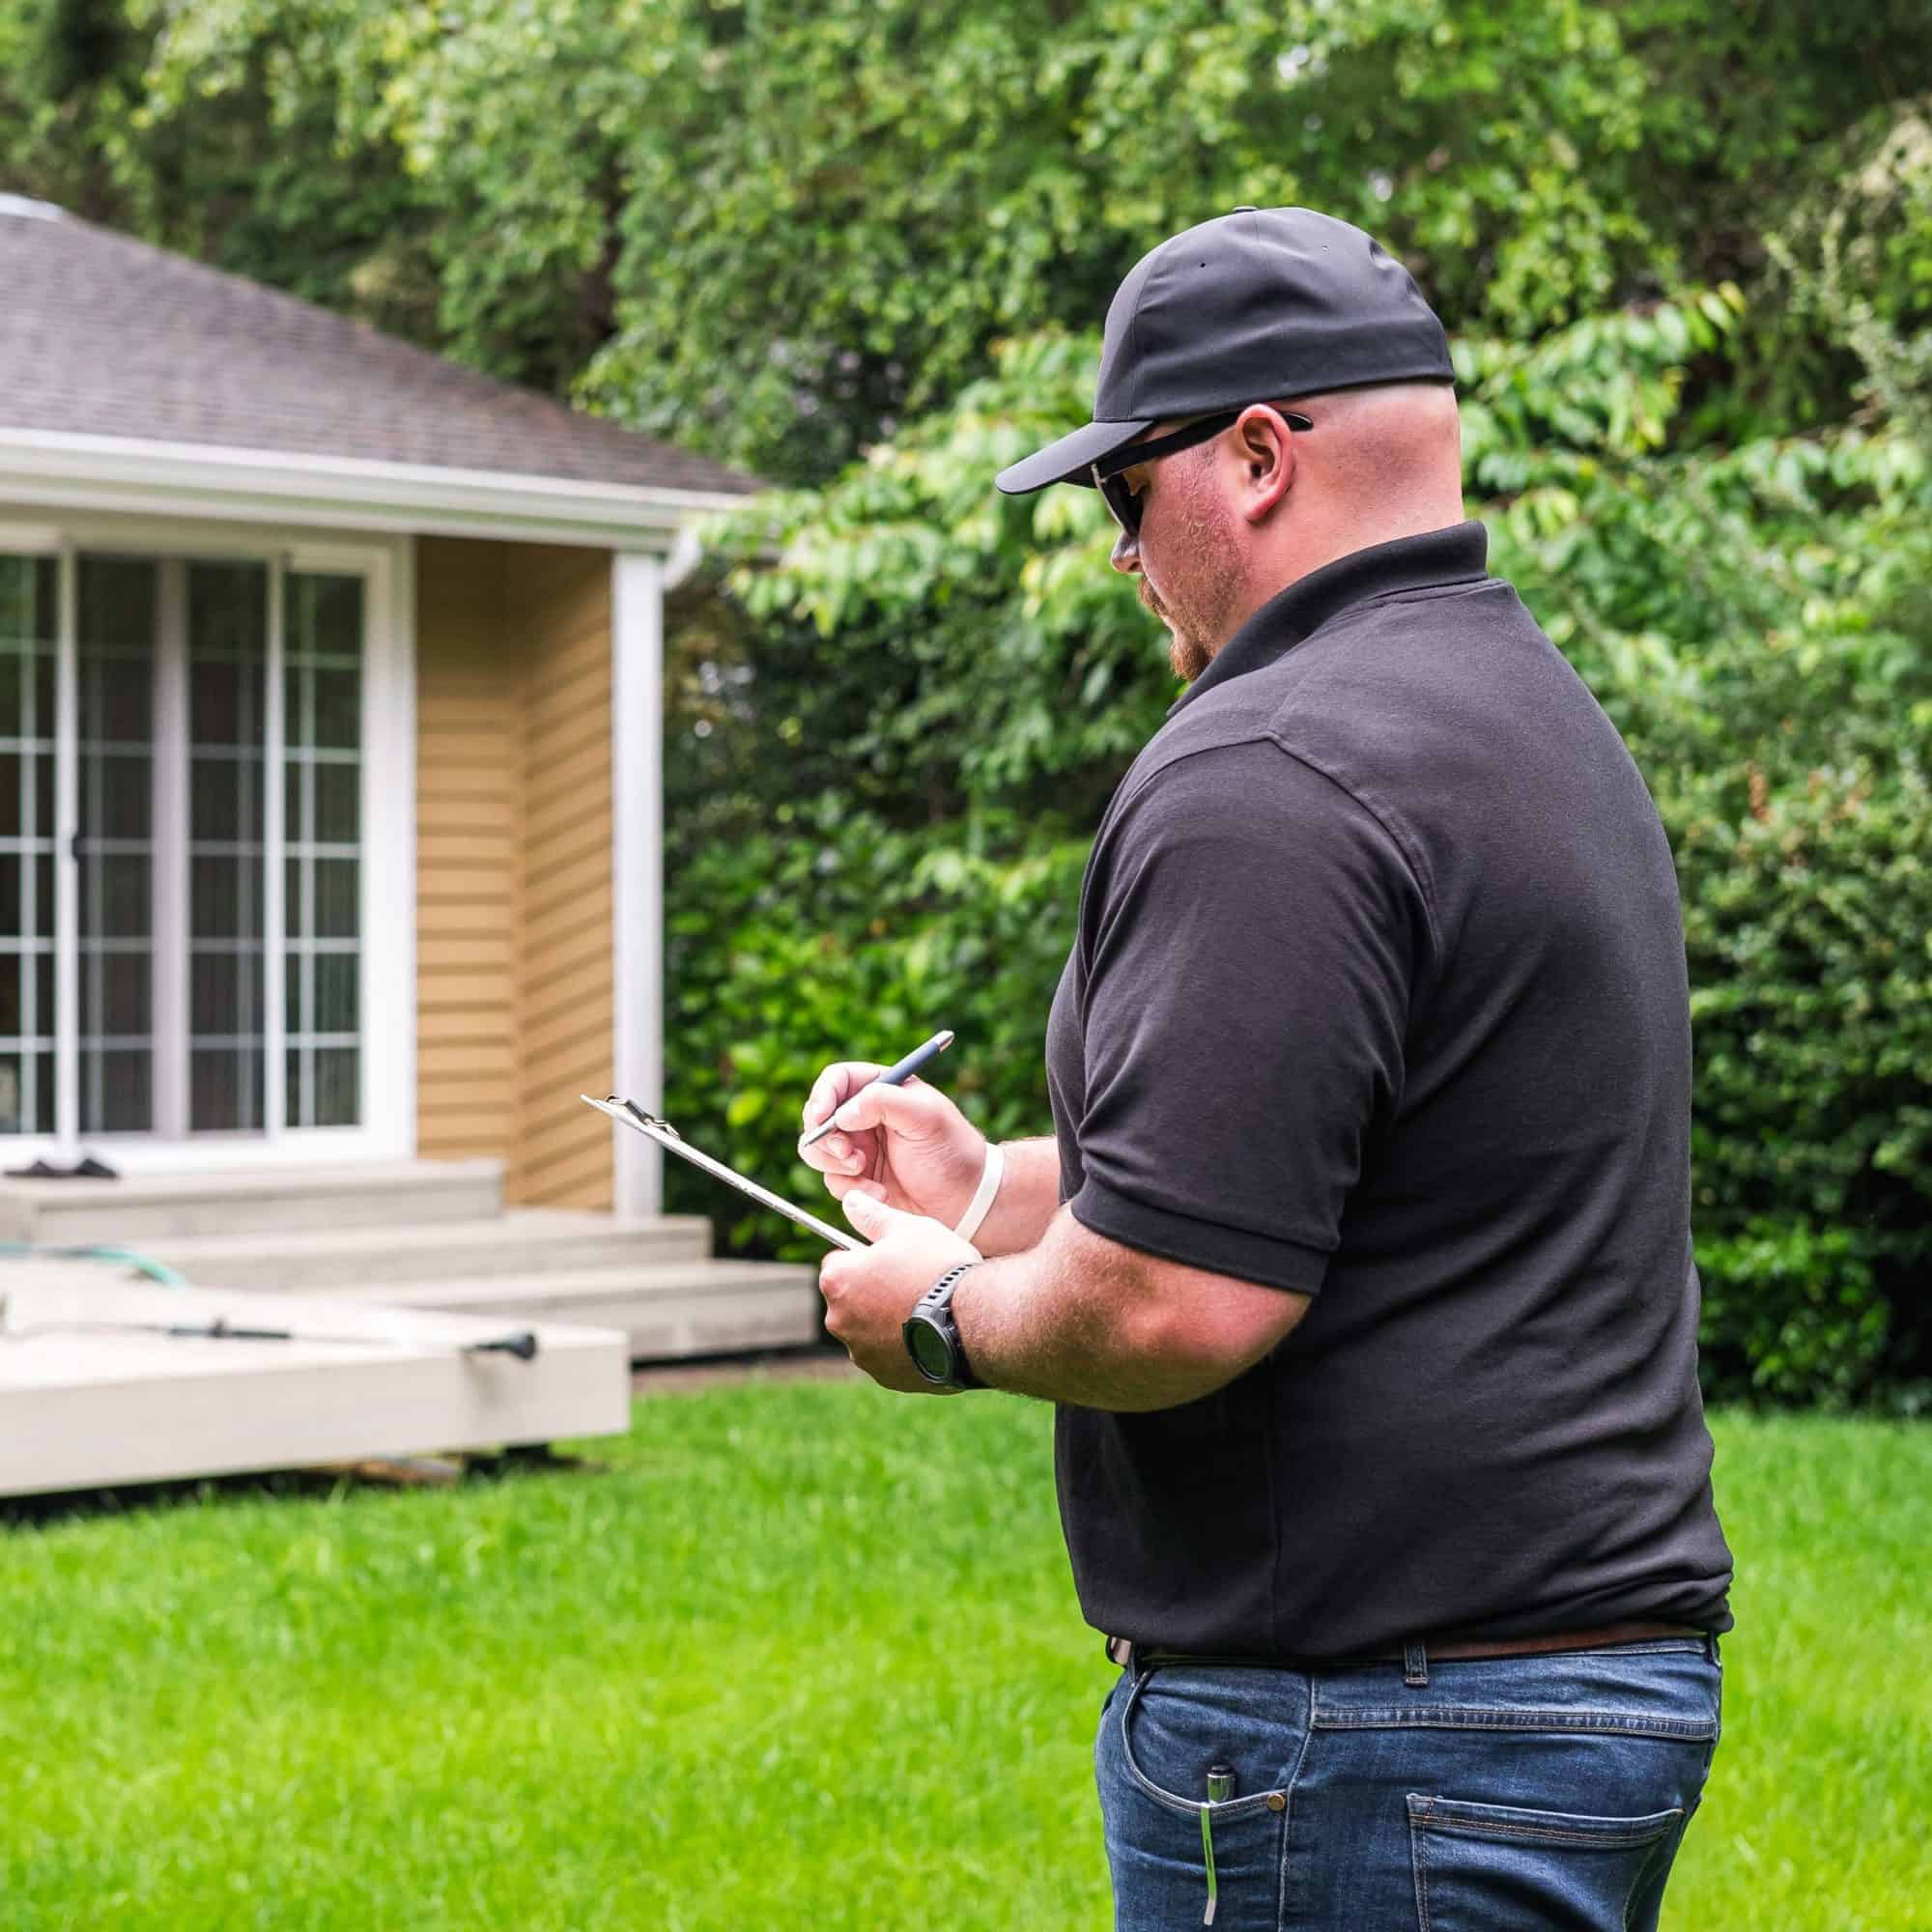 A man standing in front of a partially viewed home holding a clip board while taking notes